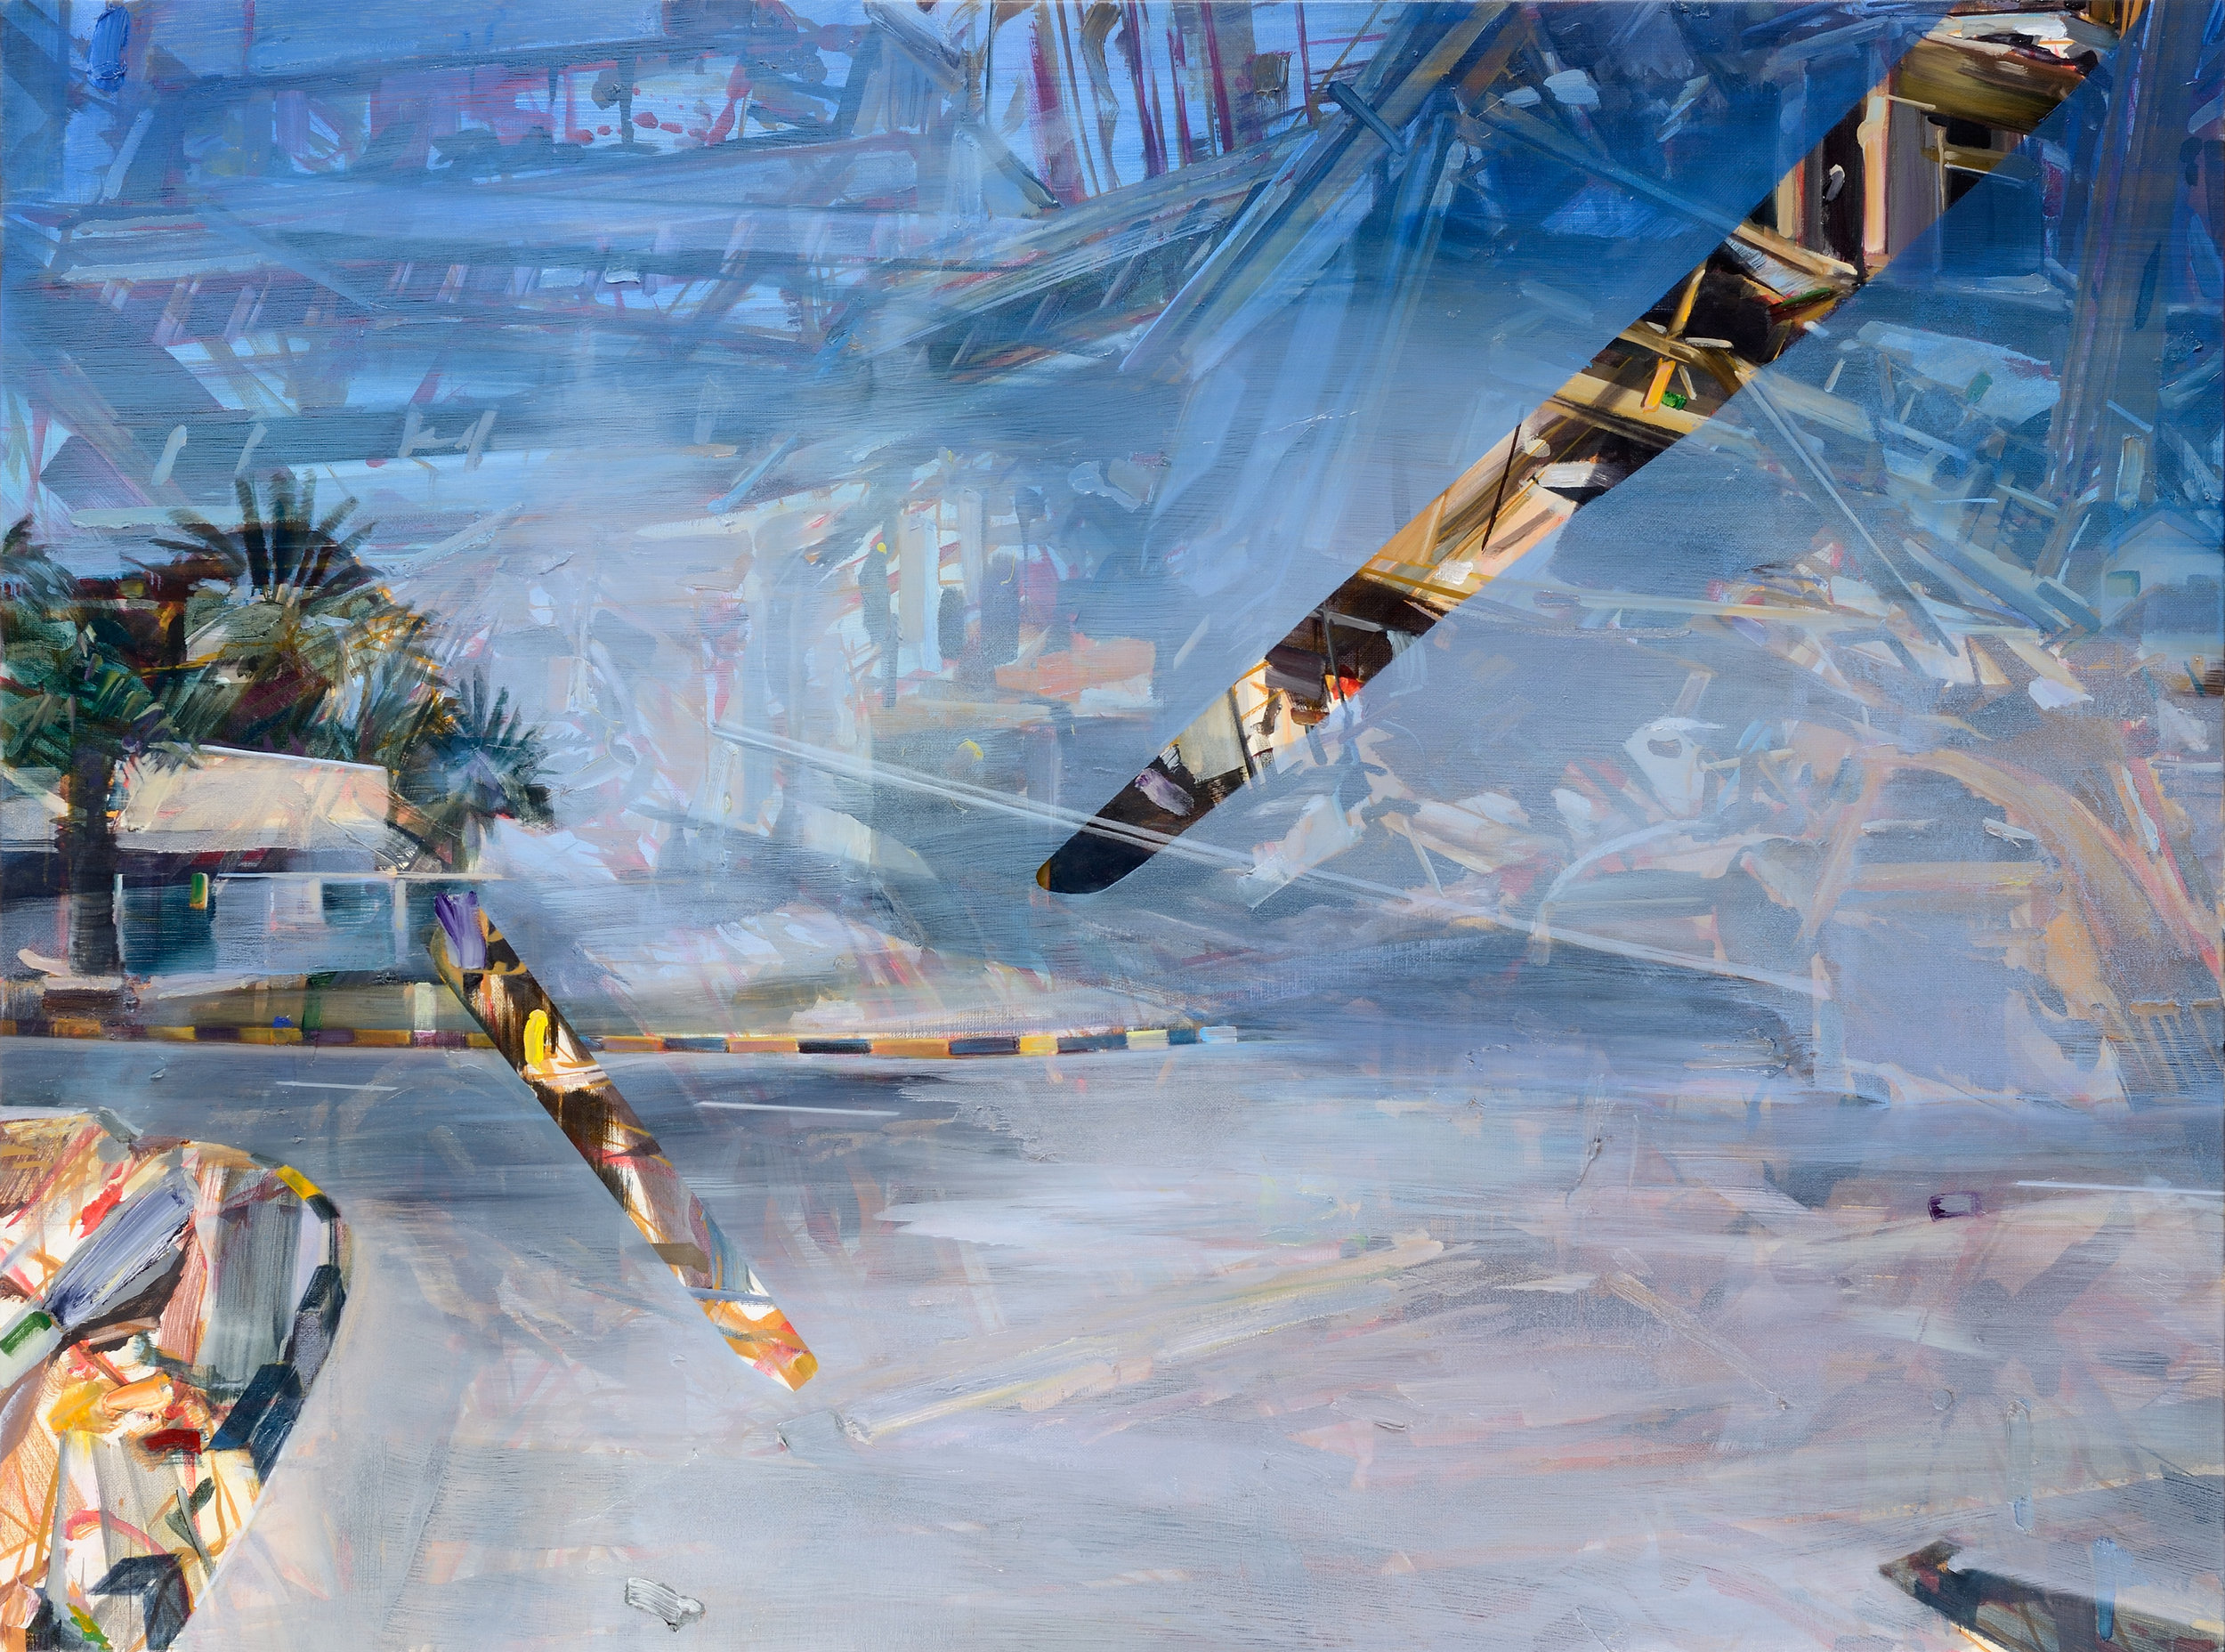 Crossroads , 2011, oil on canvas, 157 x 202cm. Private collection, France